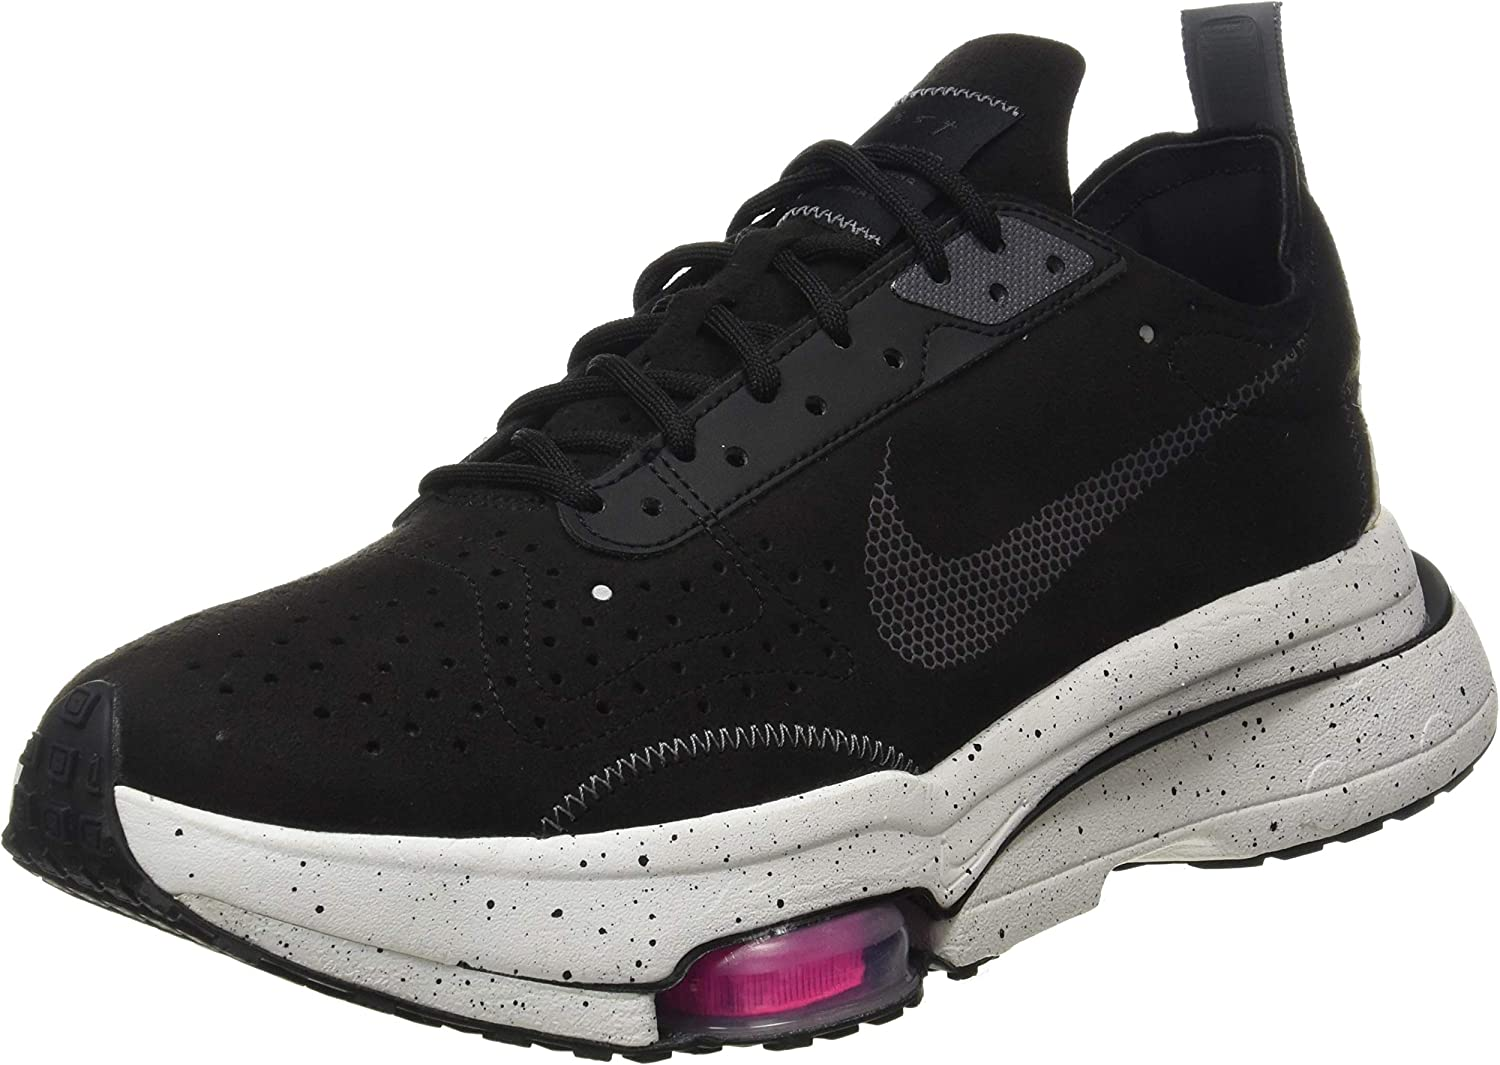 Nike Air Zoom-Type, Chaussure de Course Homme